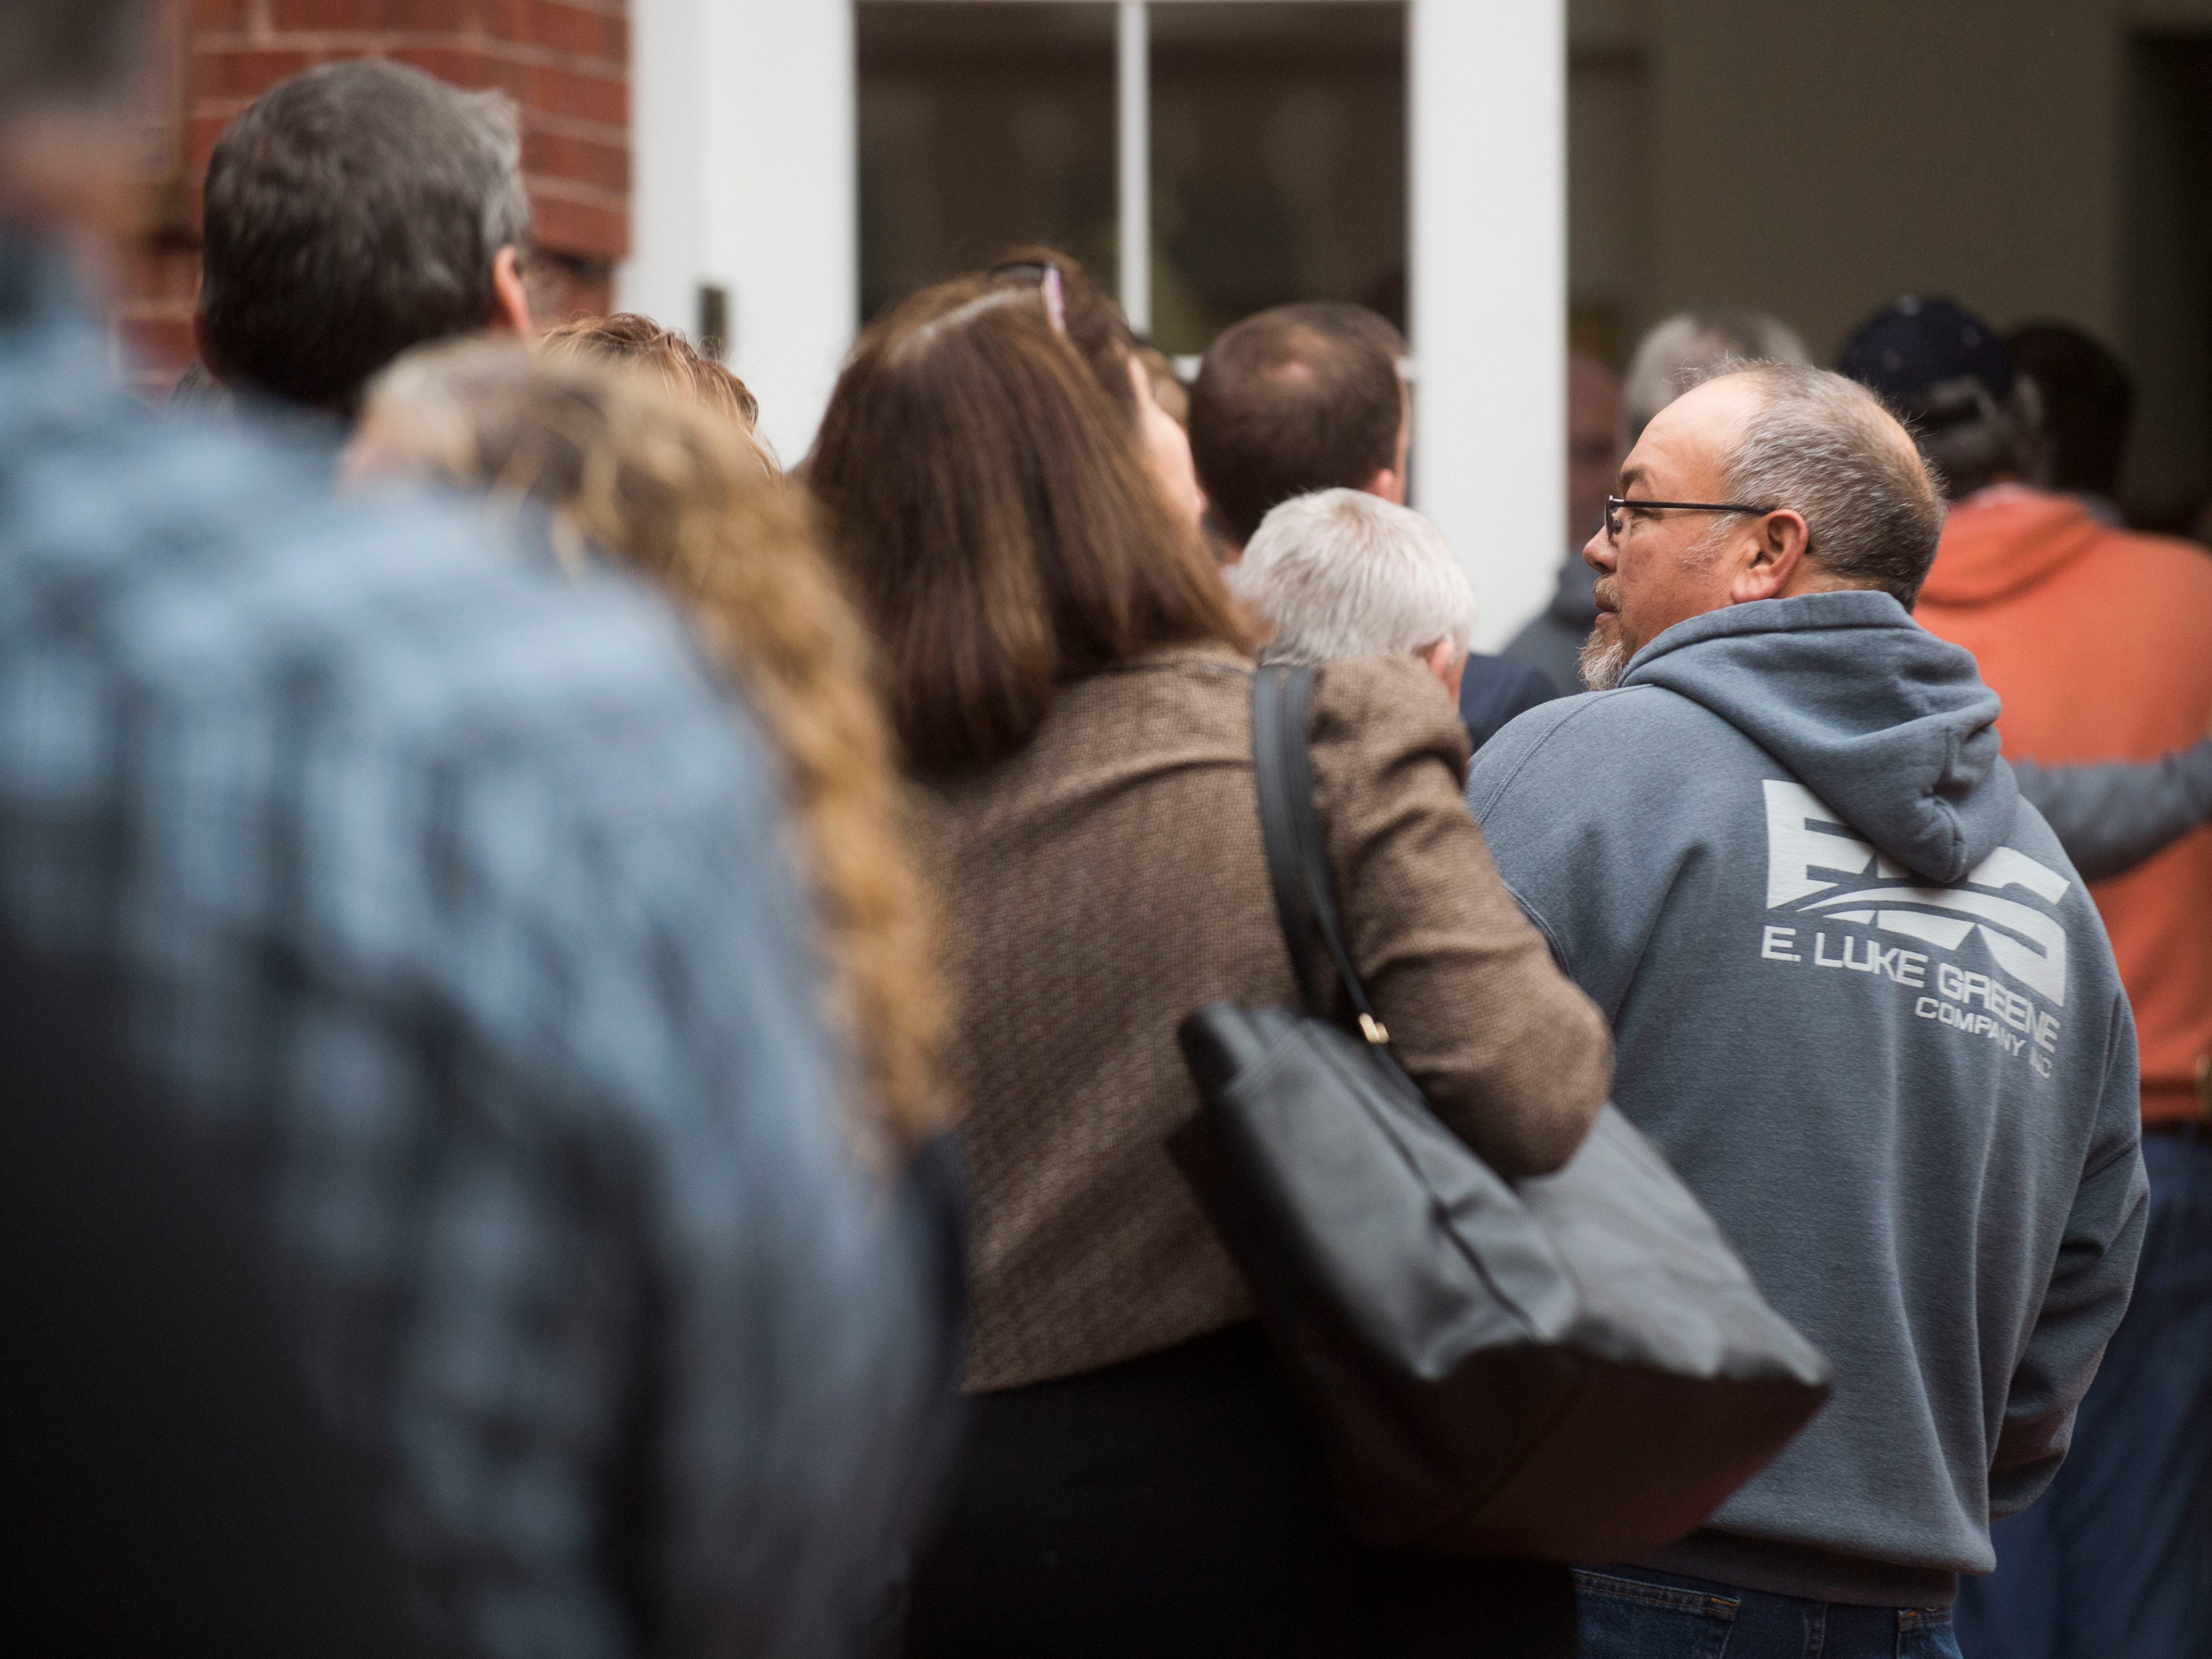 Kingston coal ash workers and others wait to enter the U.S. District Court before the closing arguments in a lawsuit by the sickened workers in Knoxville Tuesday, Nov. 6, 2018.